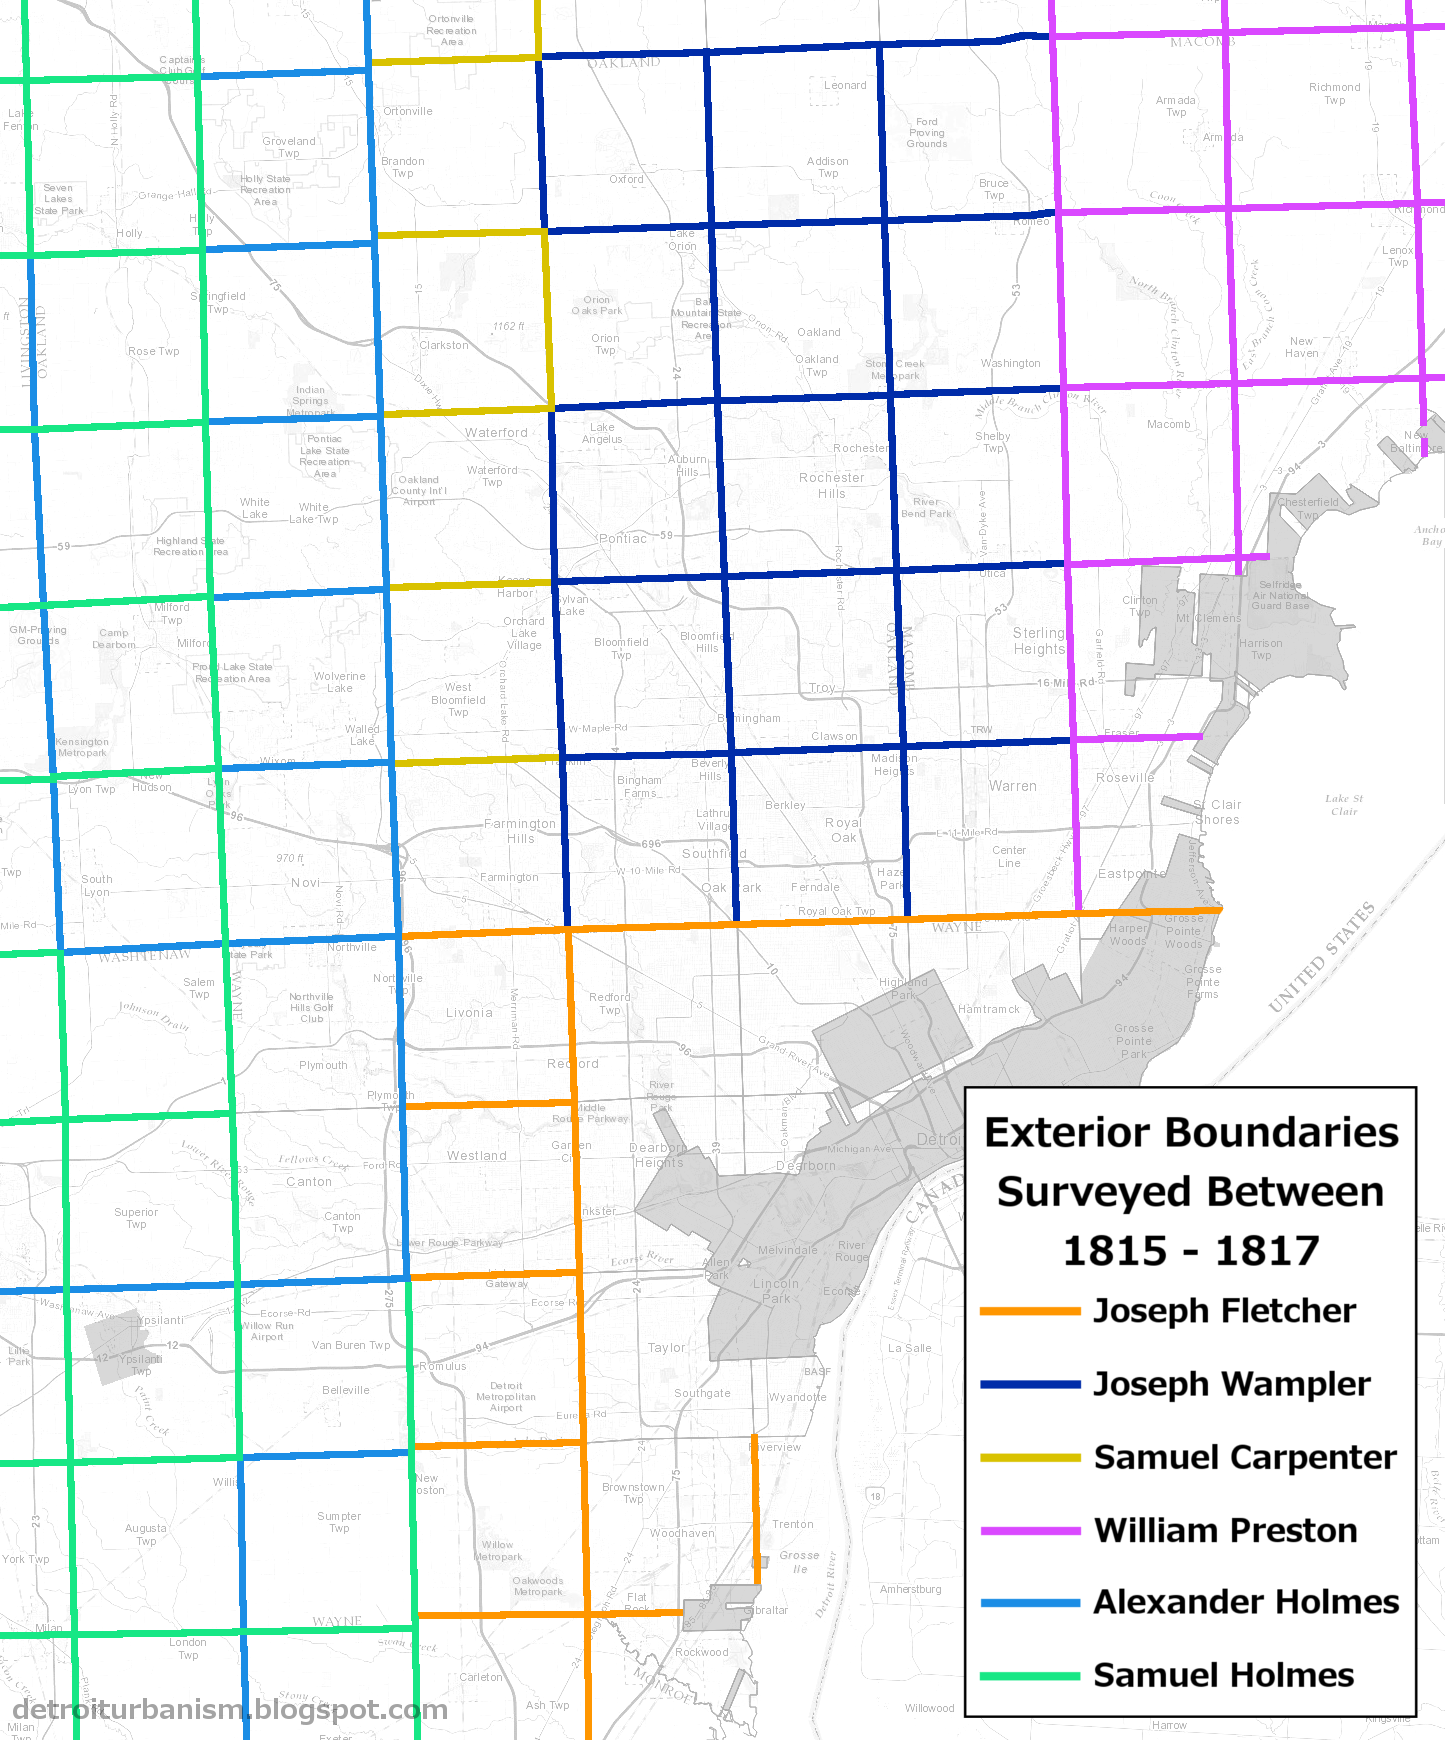 a full account of who surveyed the exterior boundaries and interior sections of every township in wayne oakland and macomb counties is provided in the